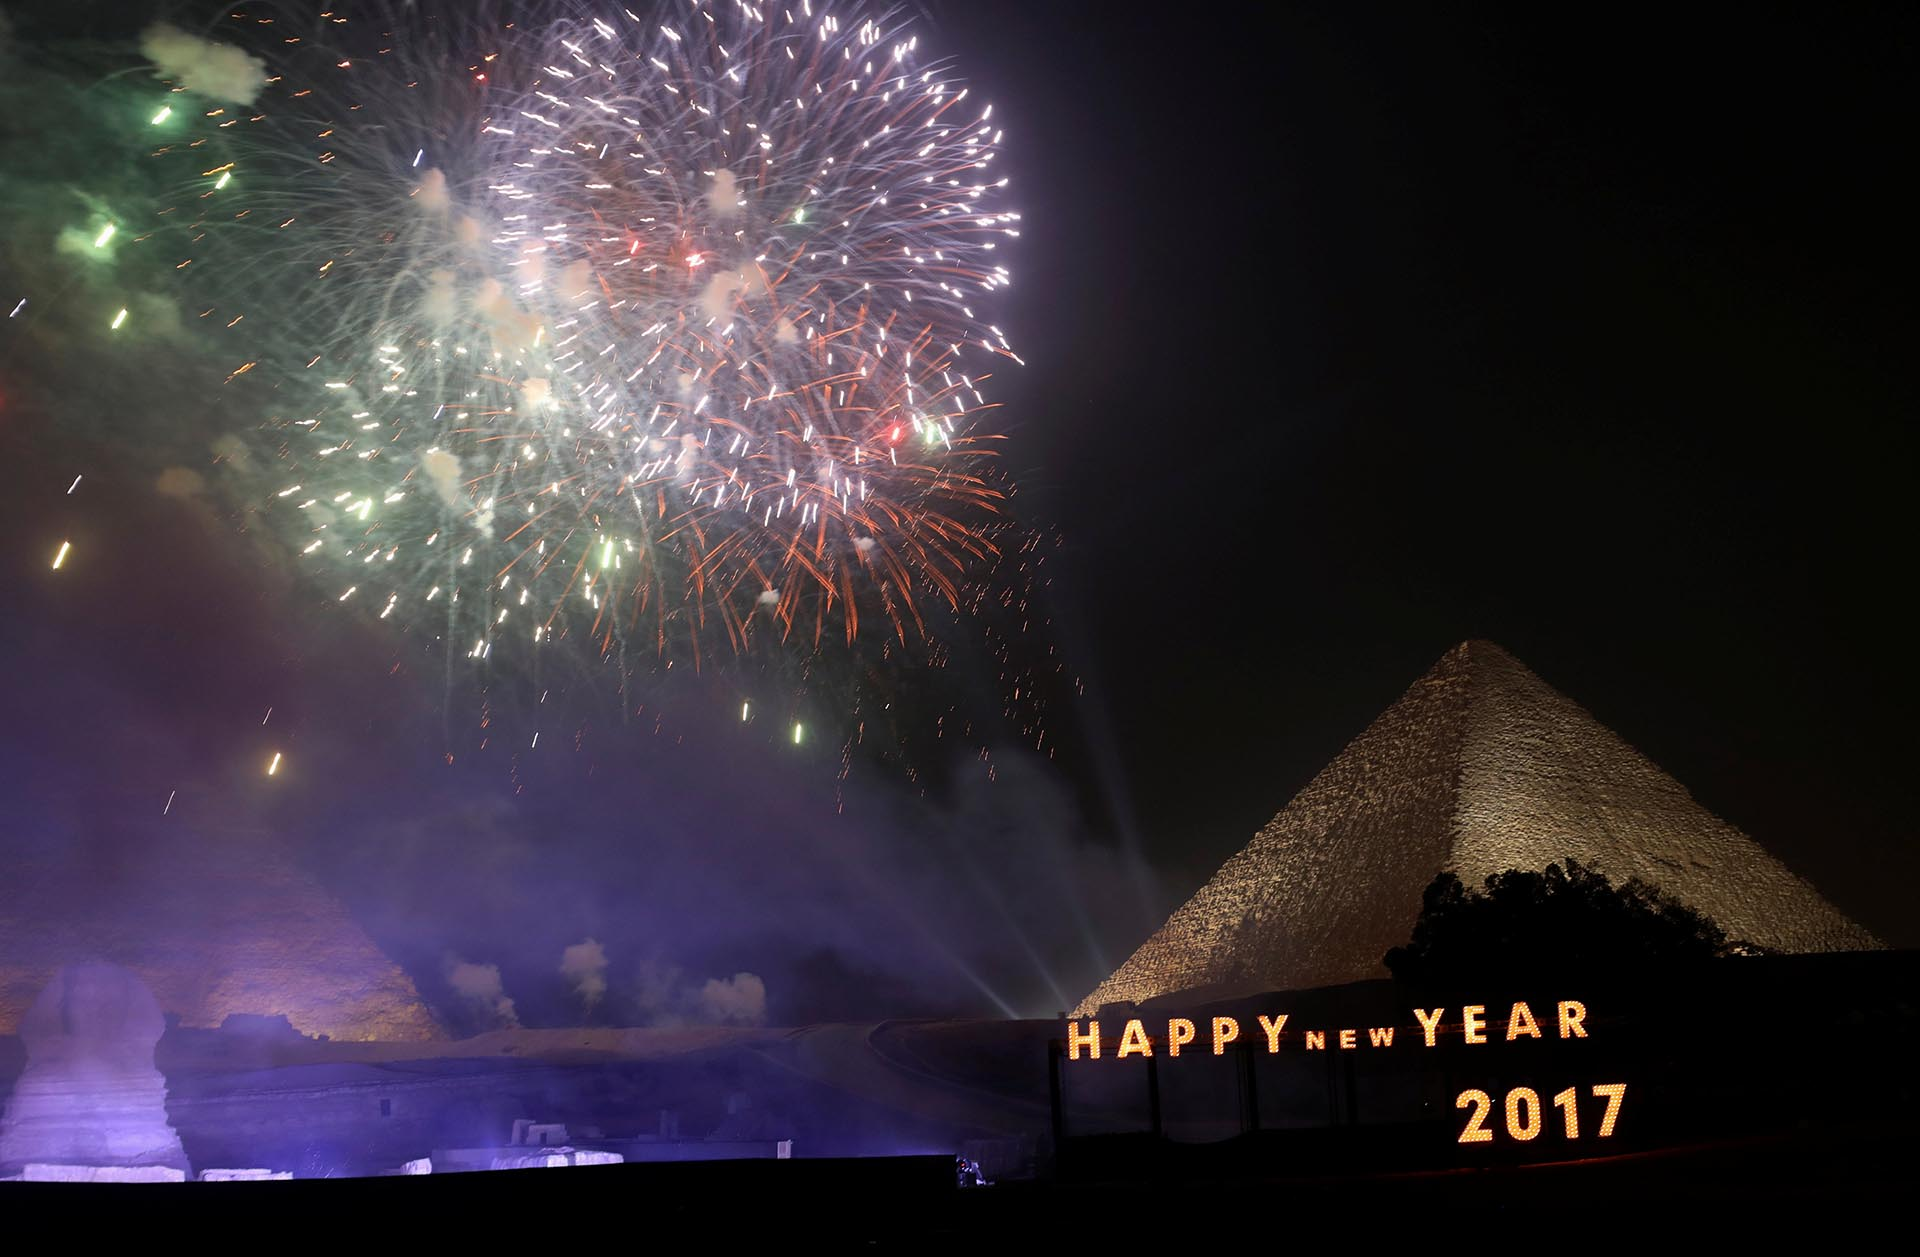 Fireworks explode above the pyramids during New Year's day celebrations on the outskirts of Cairo, Egypt, January 1, 2017. REUTERS/Mohamed Abd El Ghany